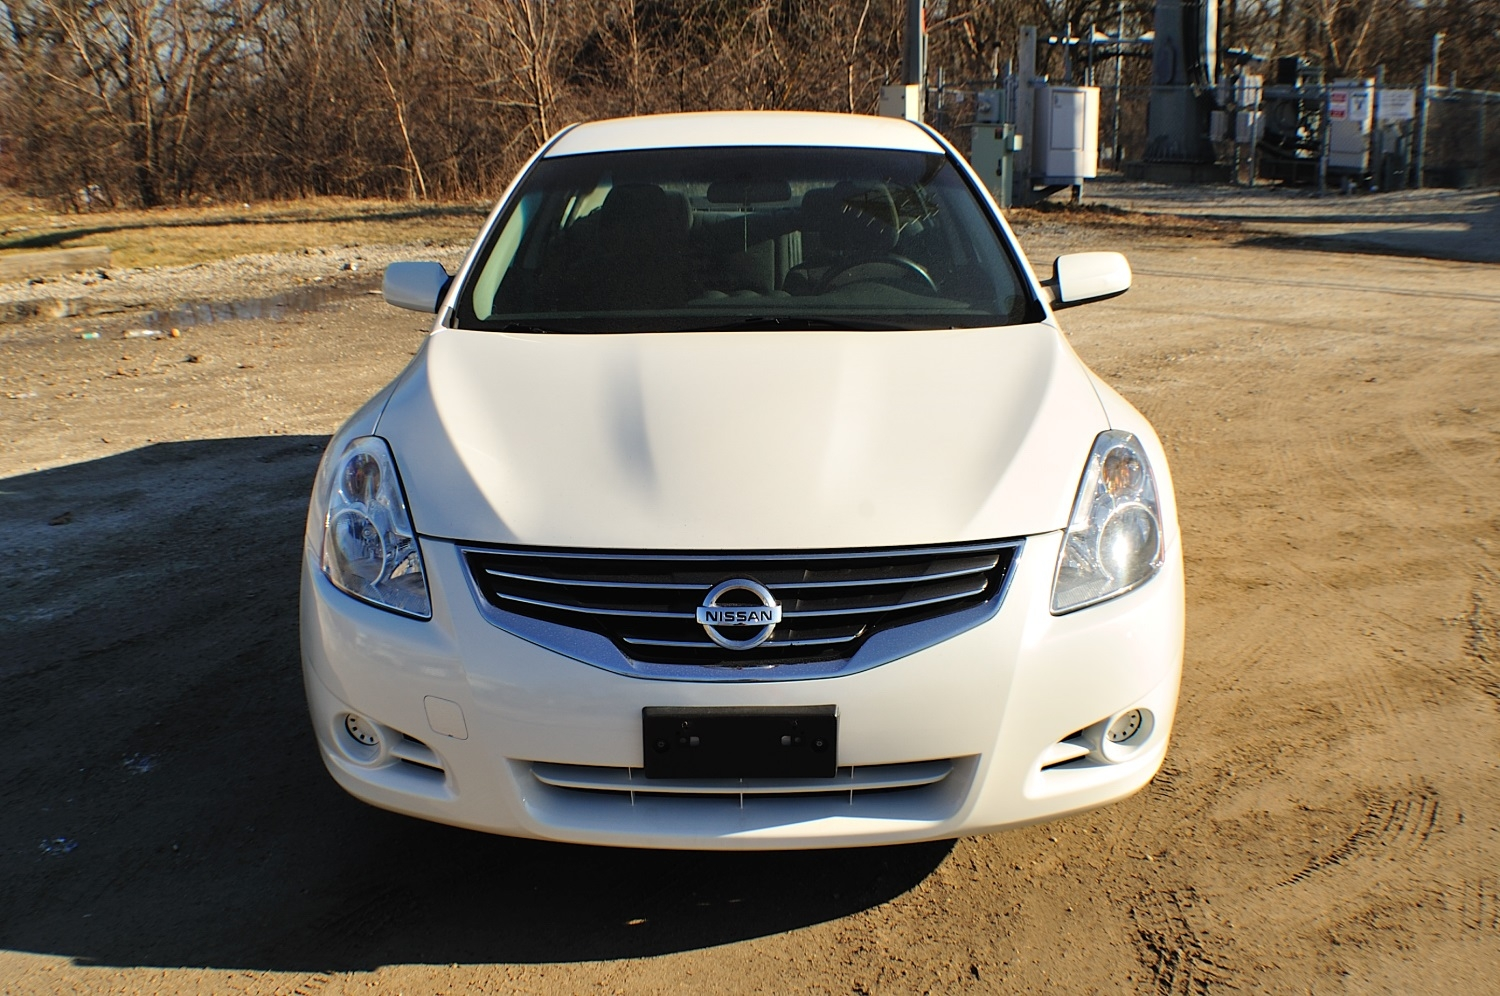 2010 Nissan Altima White Used Car Sedan Sale Gurnee Kenosha Mchenry Chicago Illinois